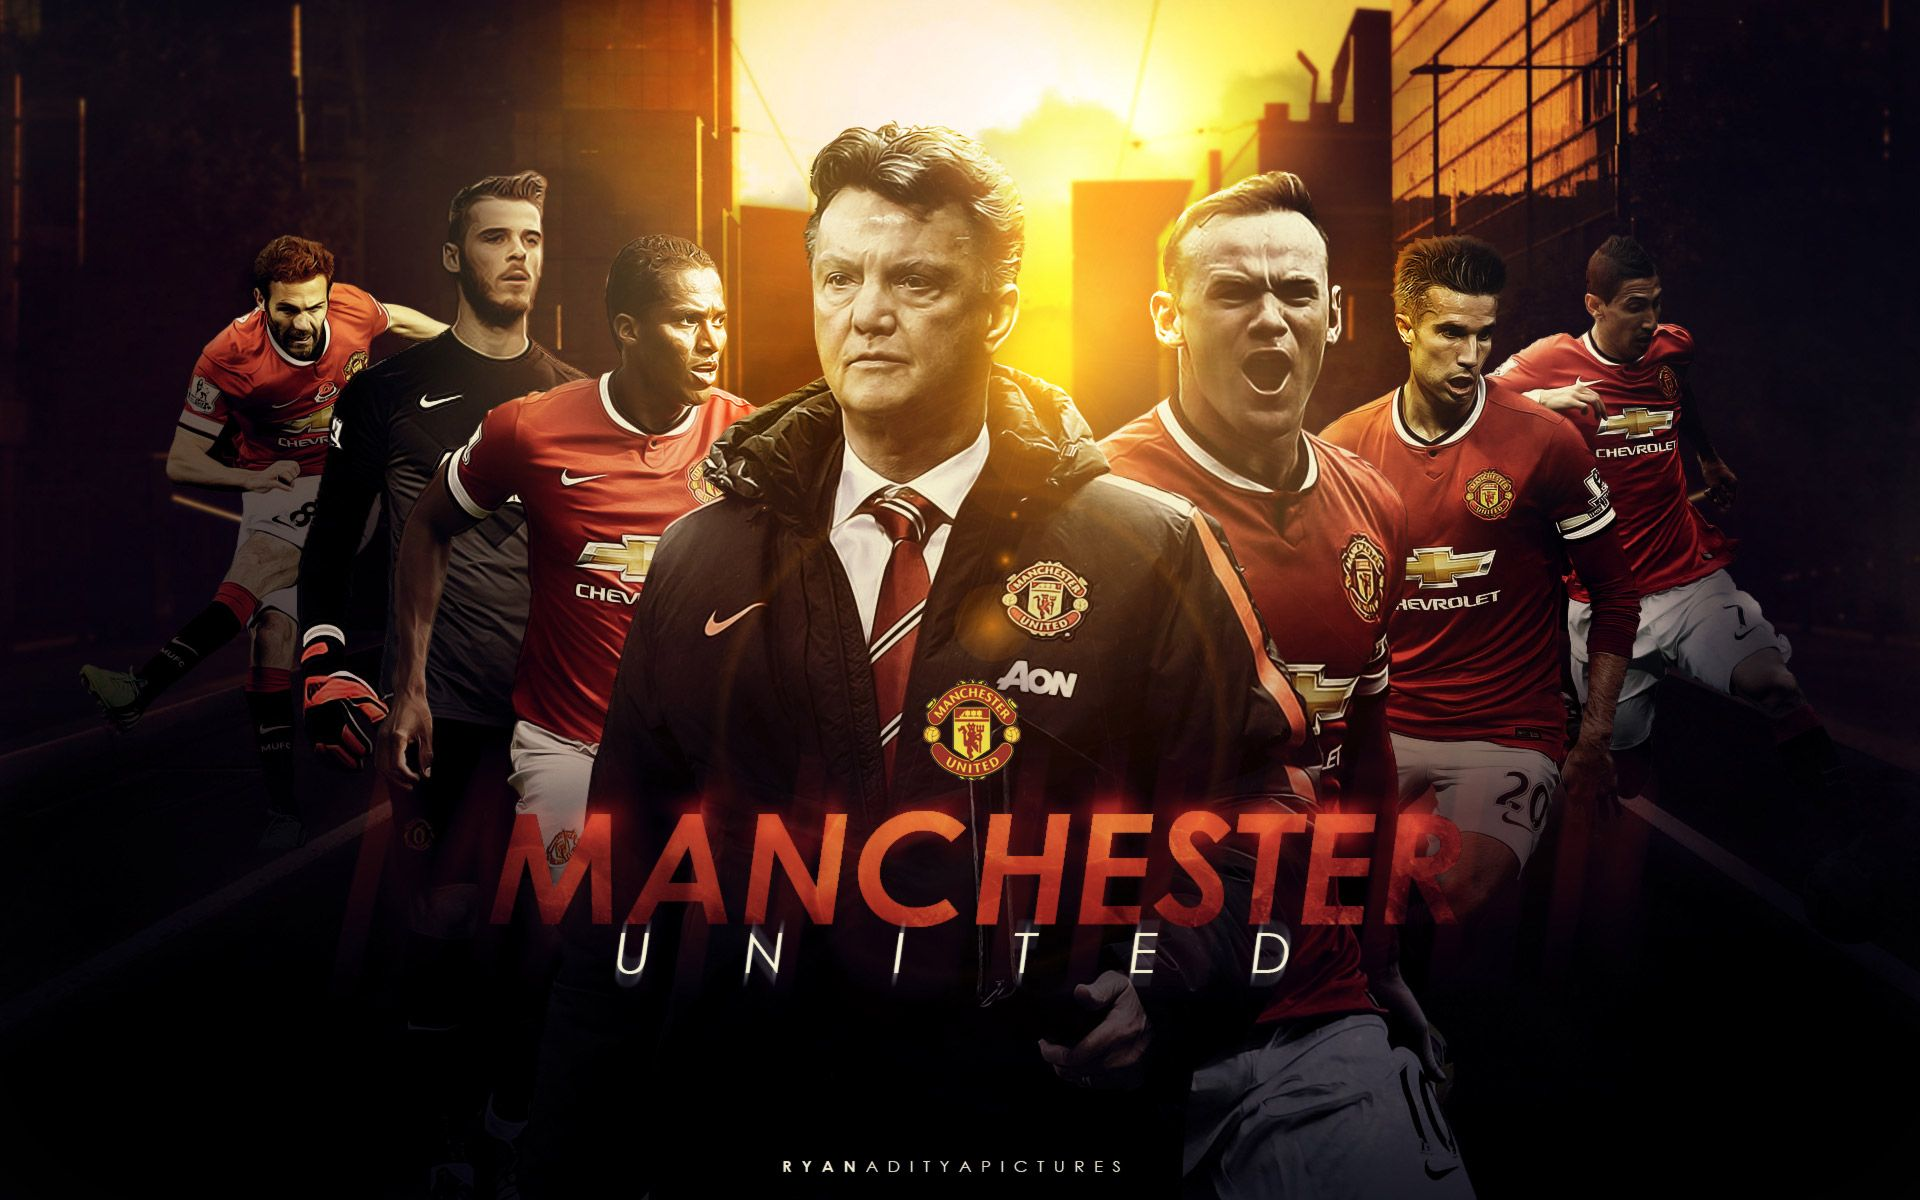 49 ] Manchester United HD Wallpapers 2015 On WallpaperSafari